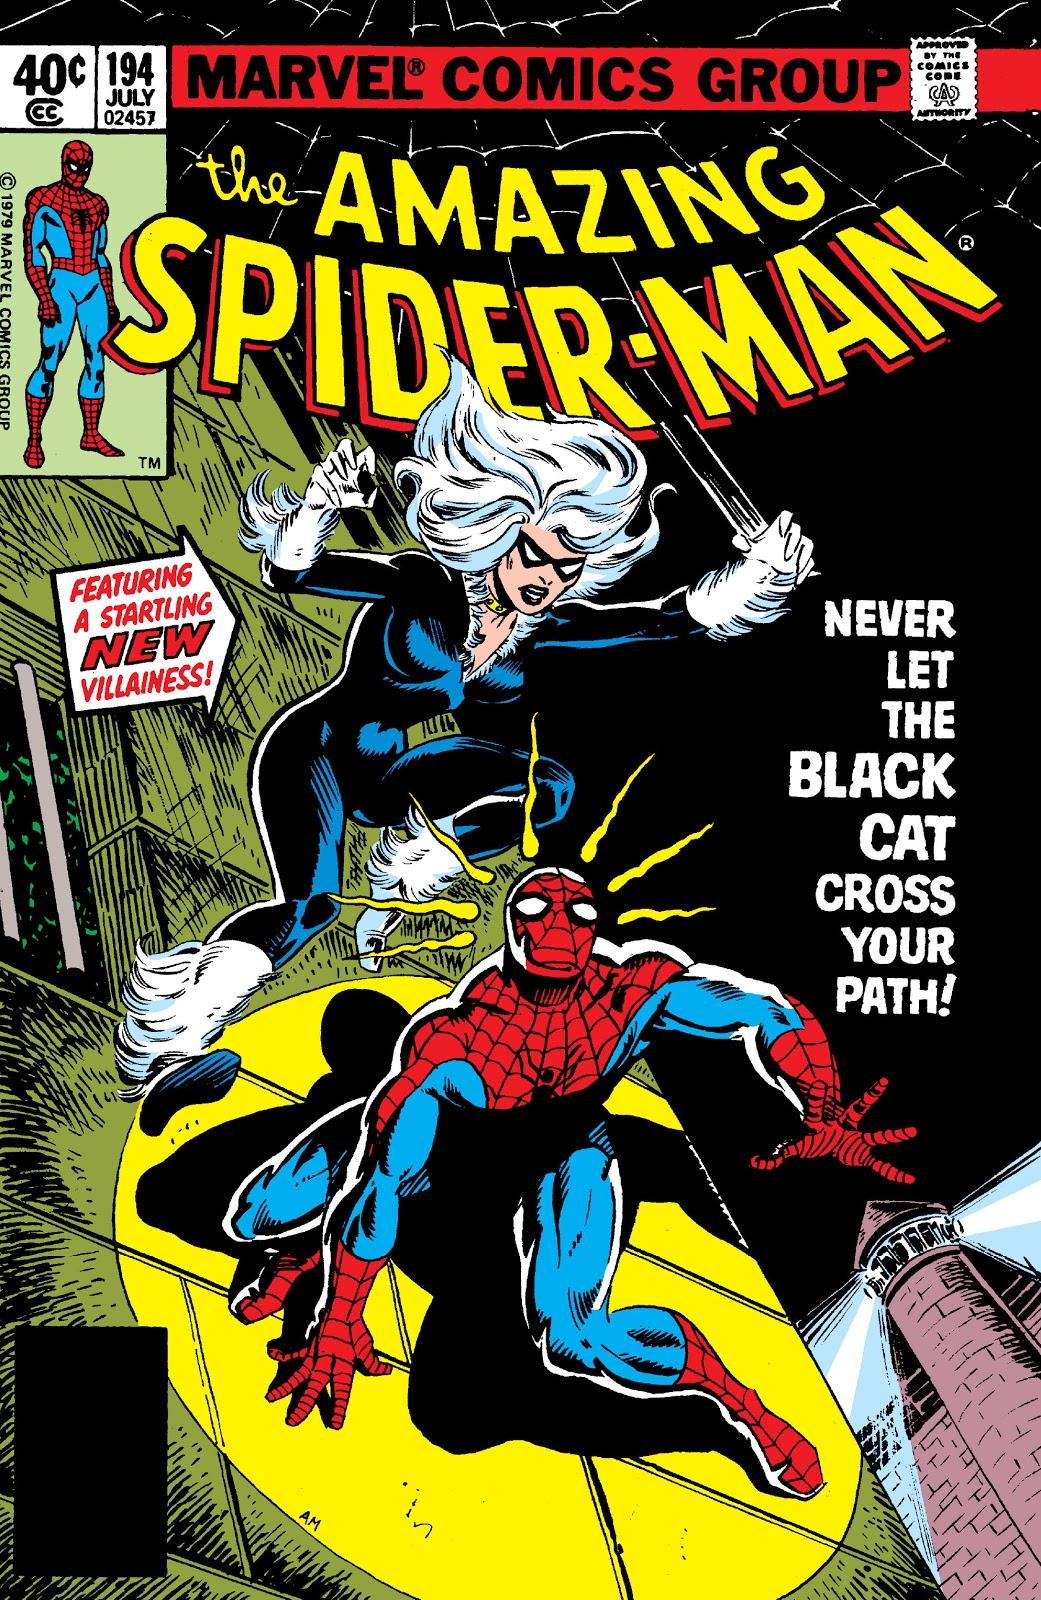 Amazing Spider Man Vol 1 194 Jpg